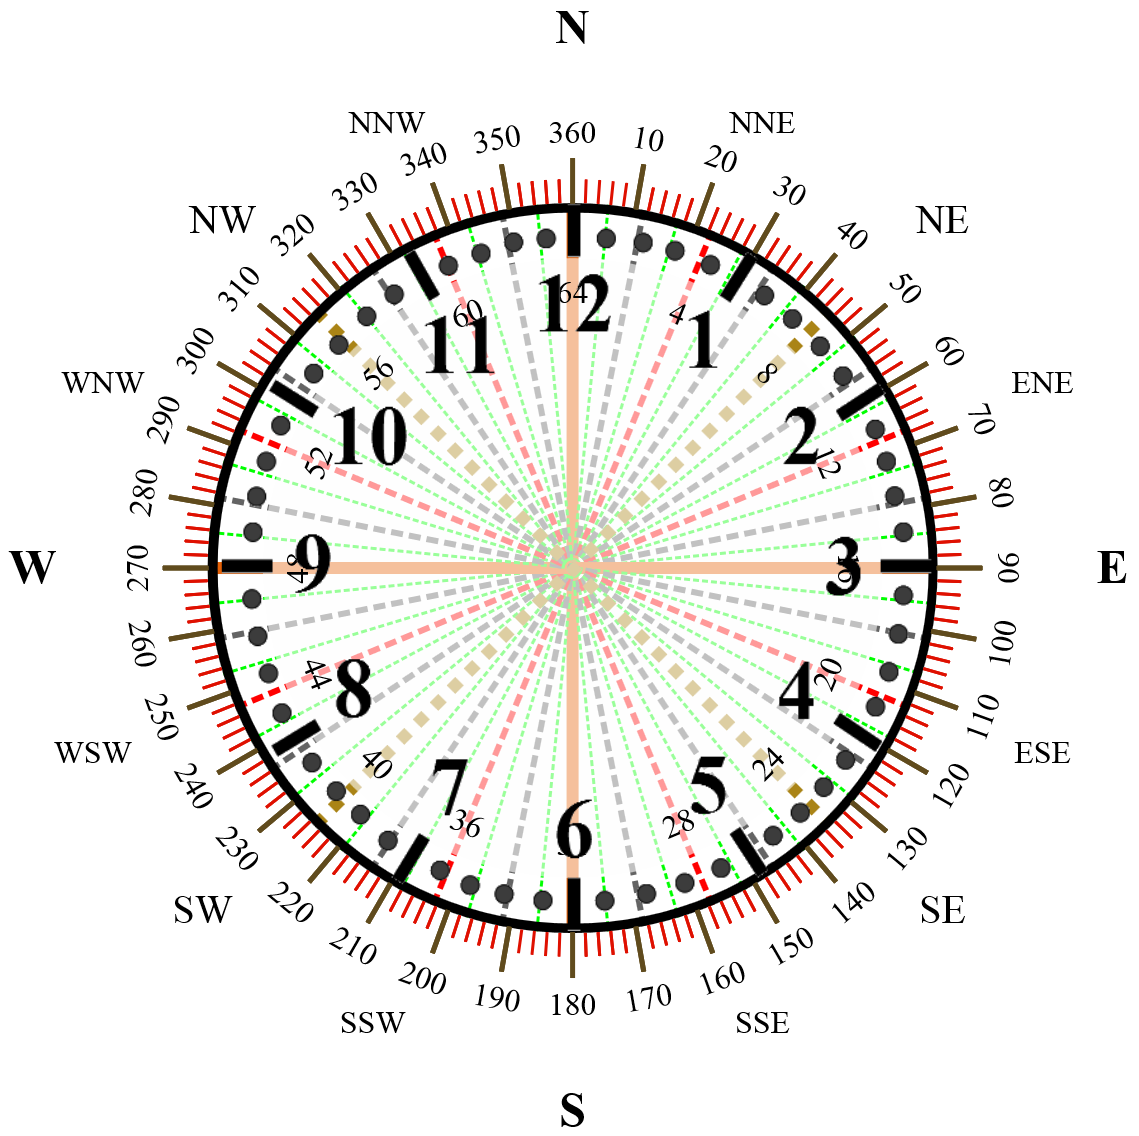 ... current time by rotatingthe clock hands each second, minute and hour